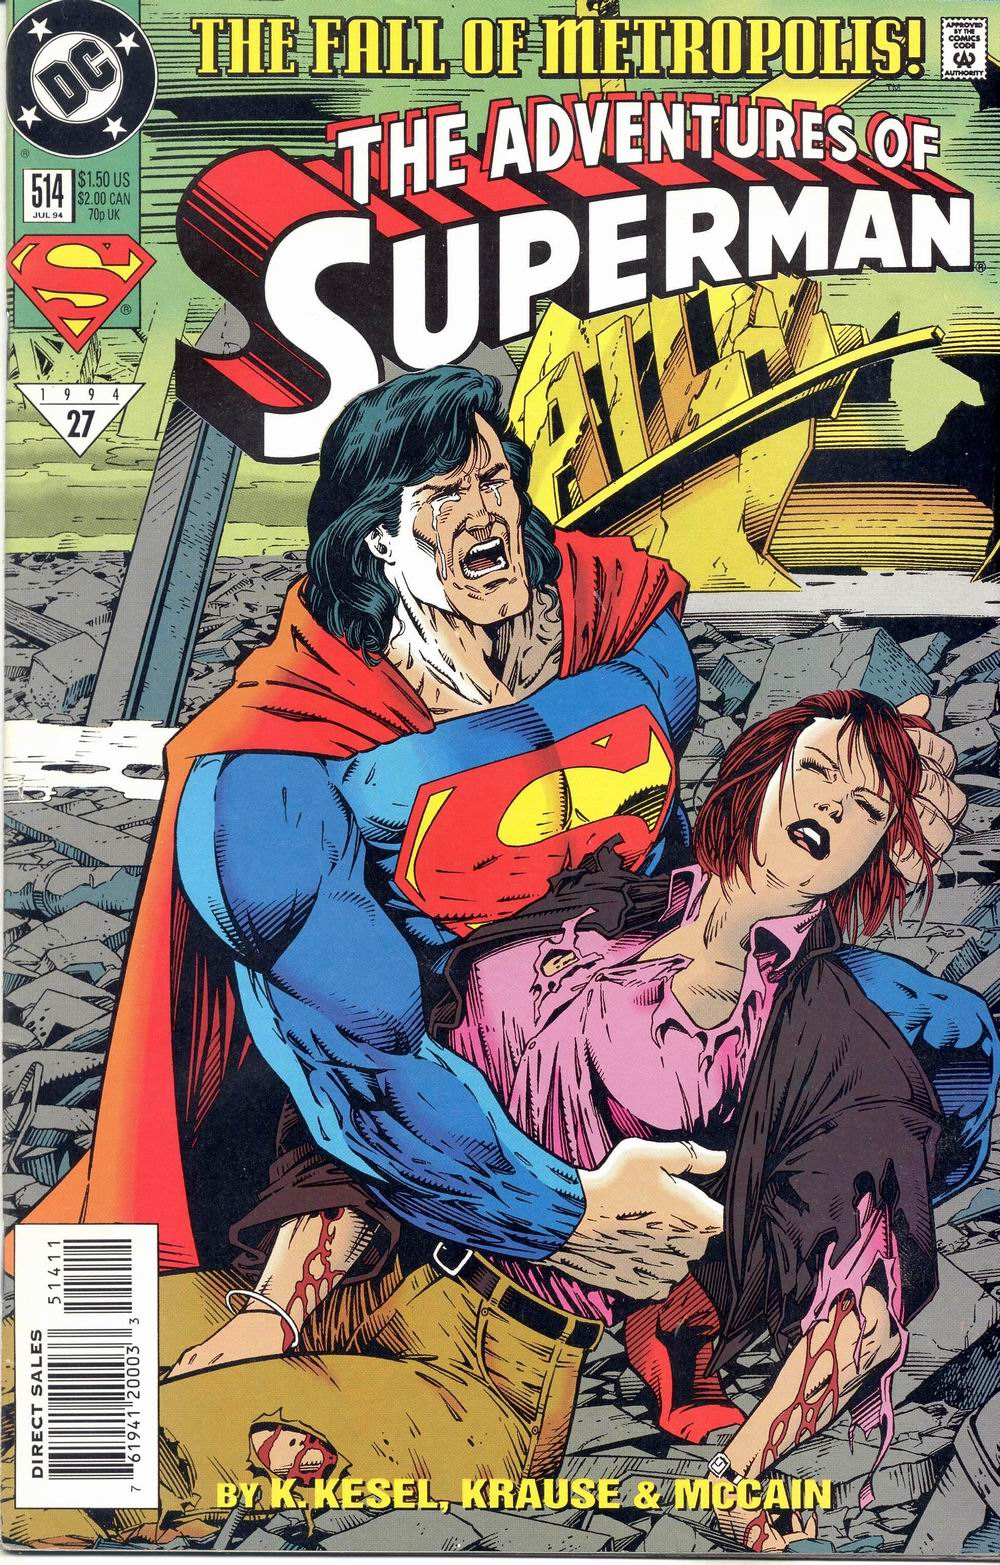 Adventures of Superman (1987) 514 Page 1